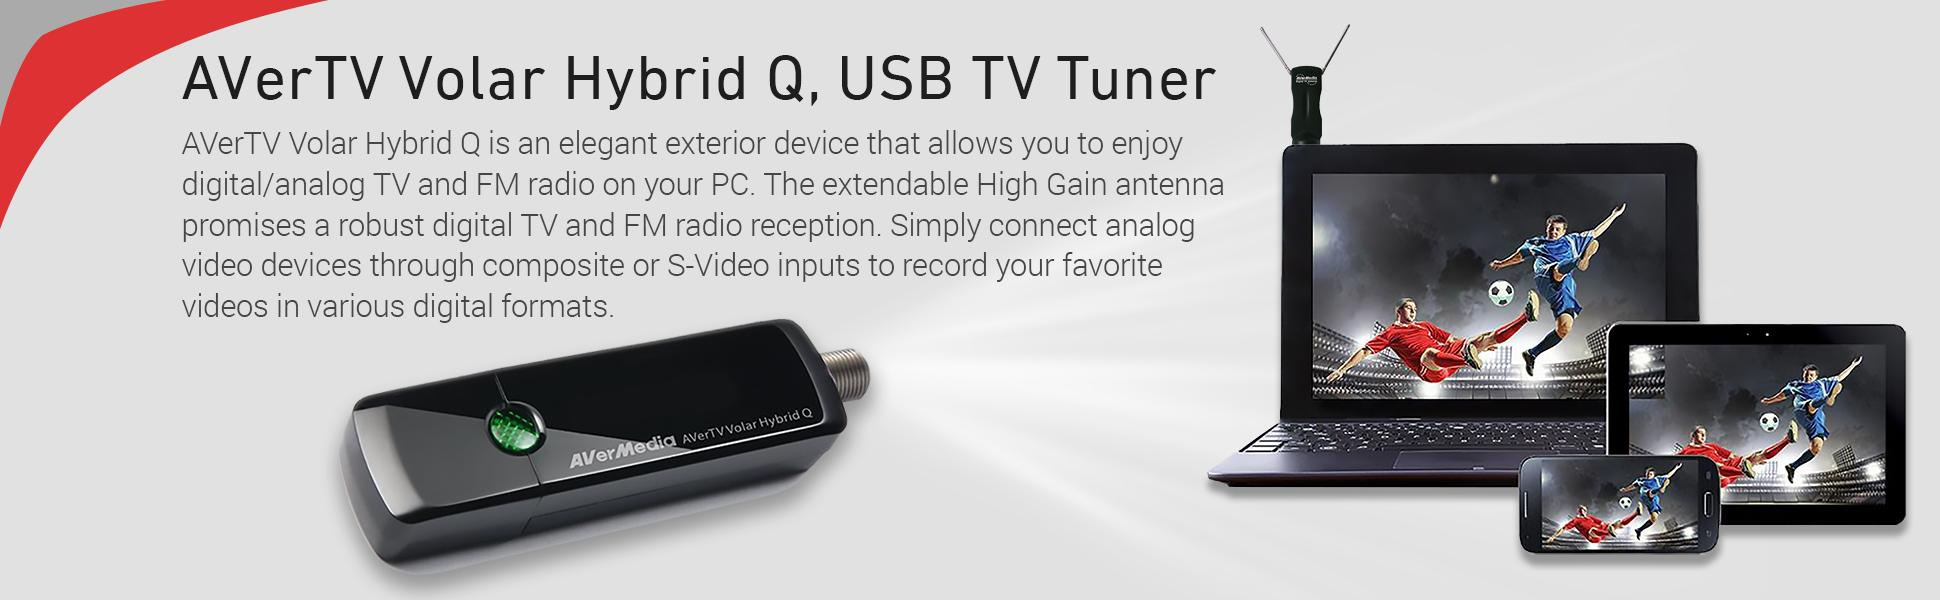 Amazon Com Avermedia Avertv Volar Hybrid Q Usb Tv Tuner